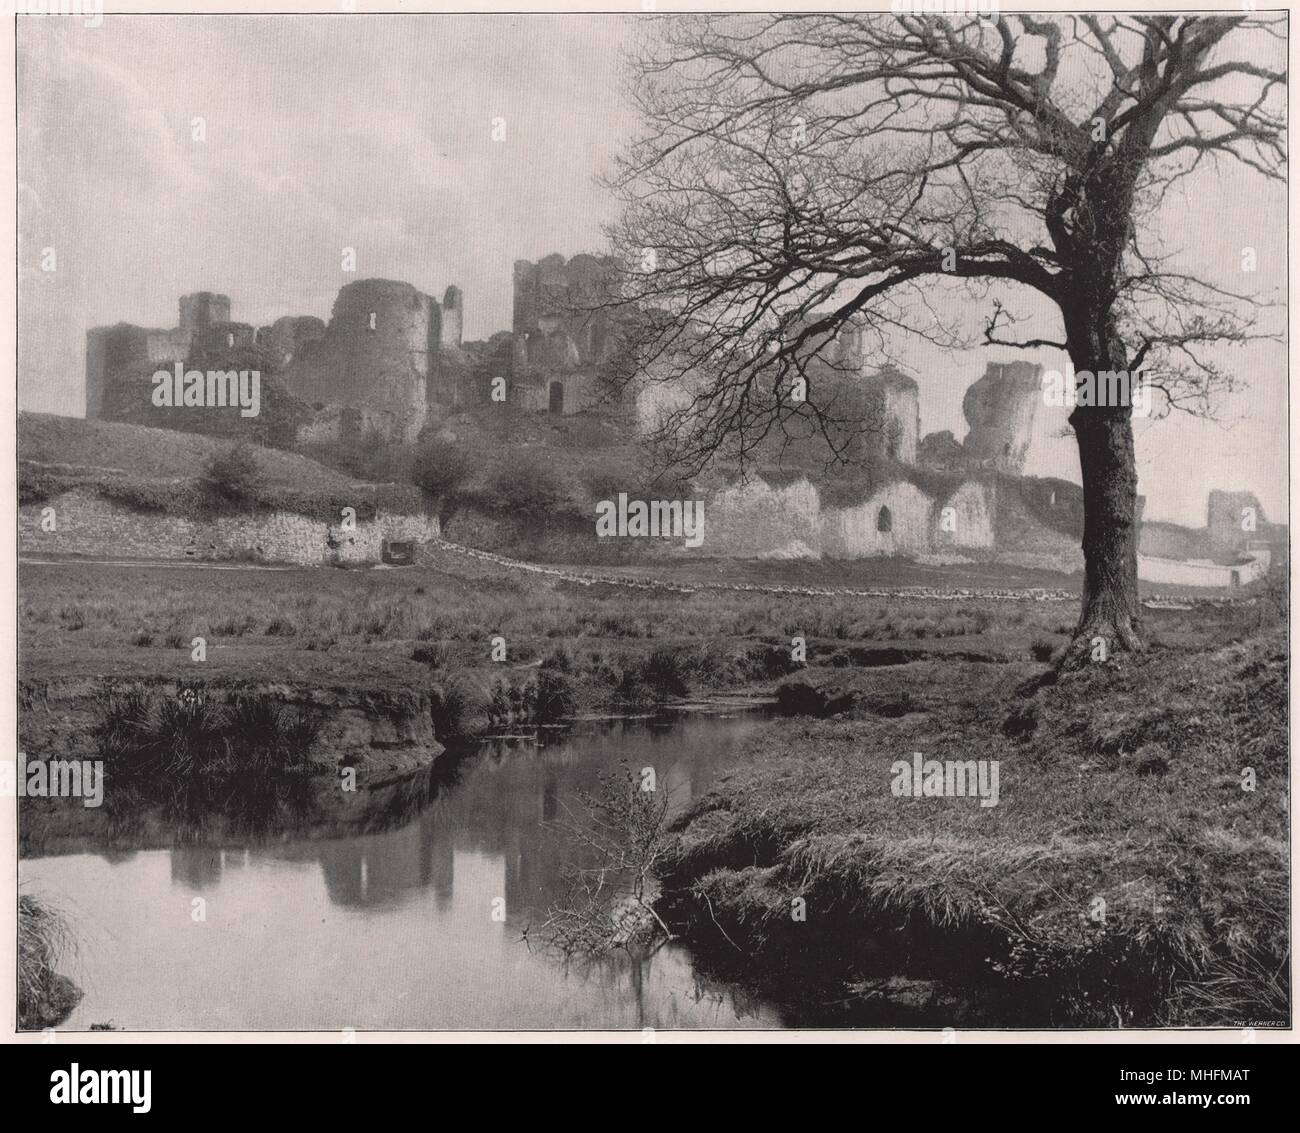 Caerphilly Castle, a few miles from Cardiff, has fallen so rapidly into decay within the past hundred years that it has little … - Stock Image